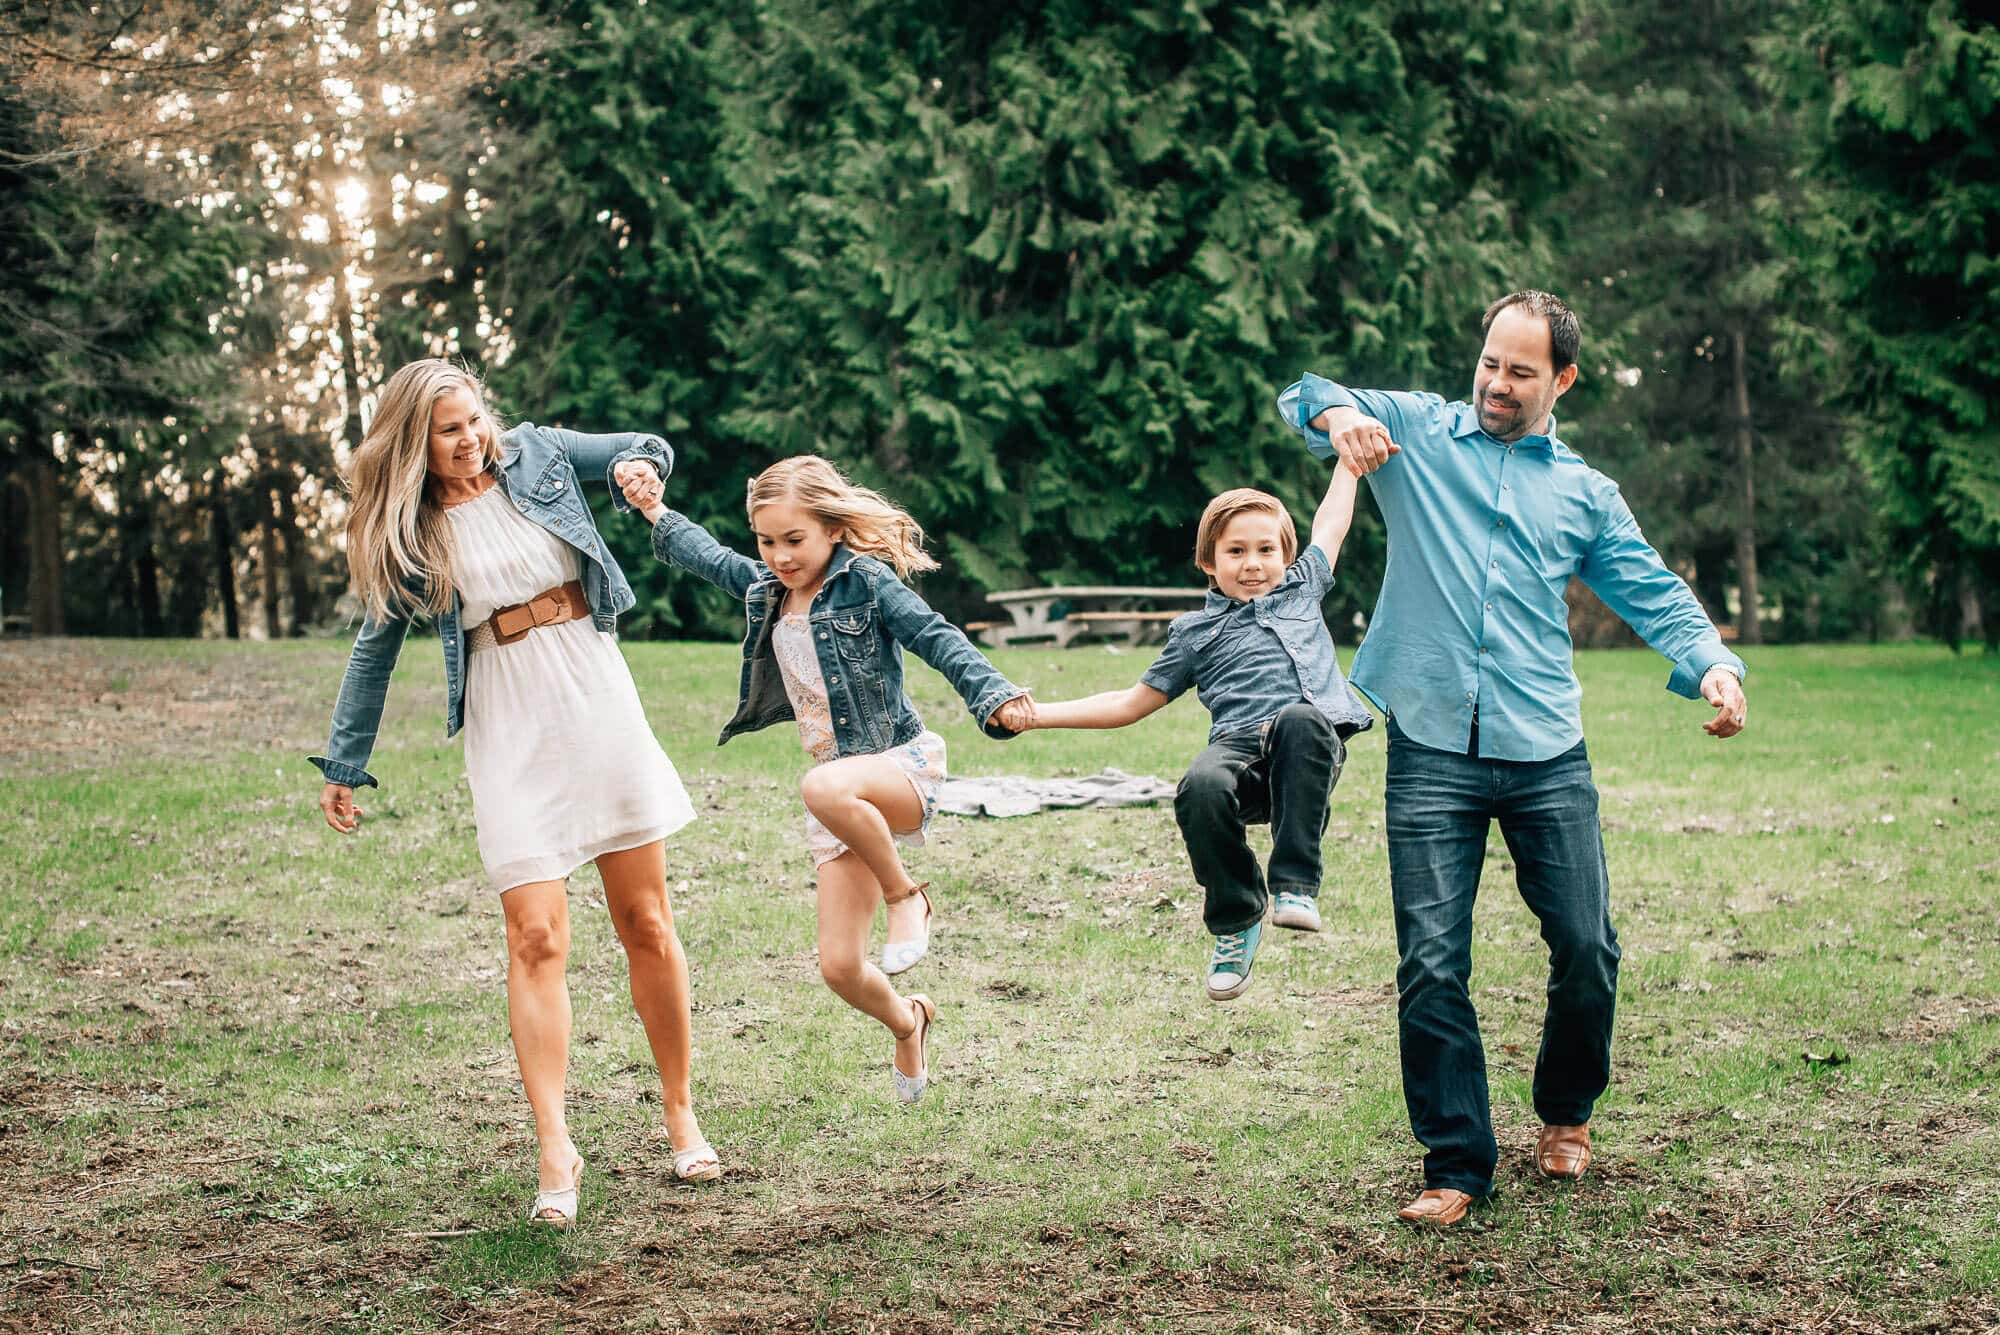 Fun family photography session in park with parents swinging 2 kids between them